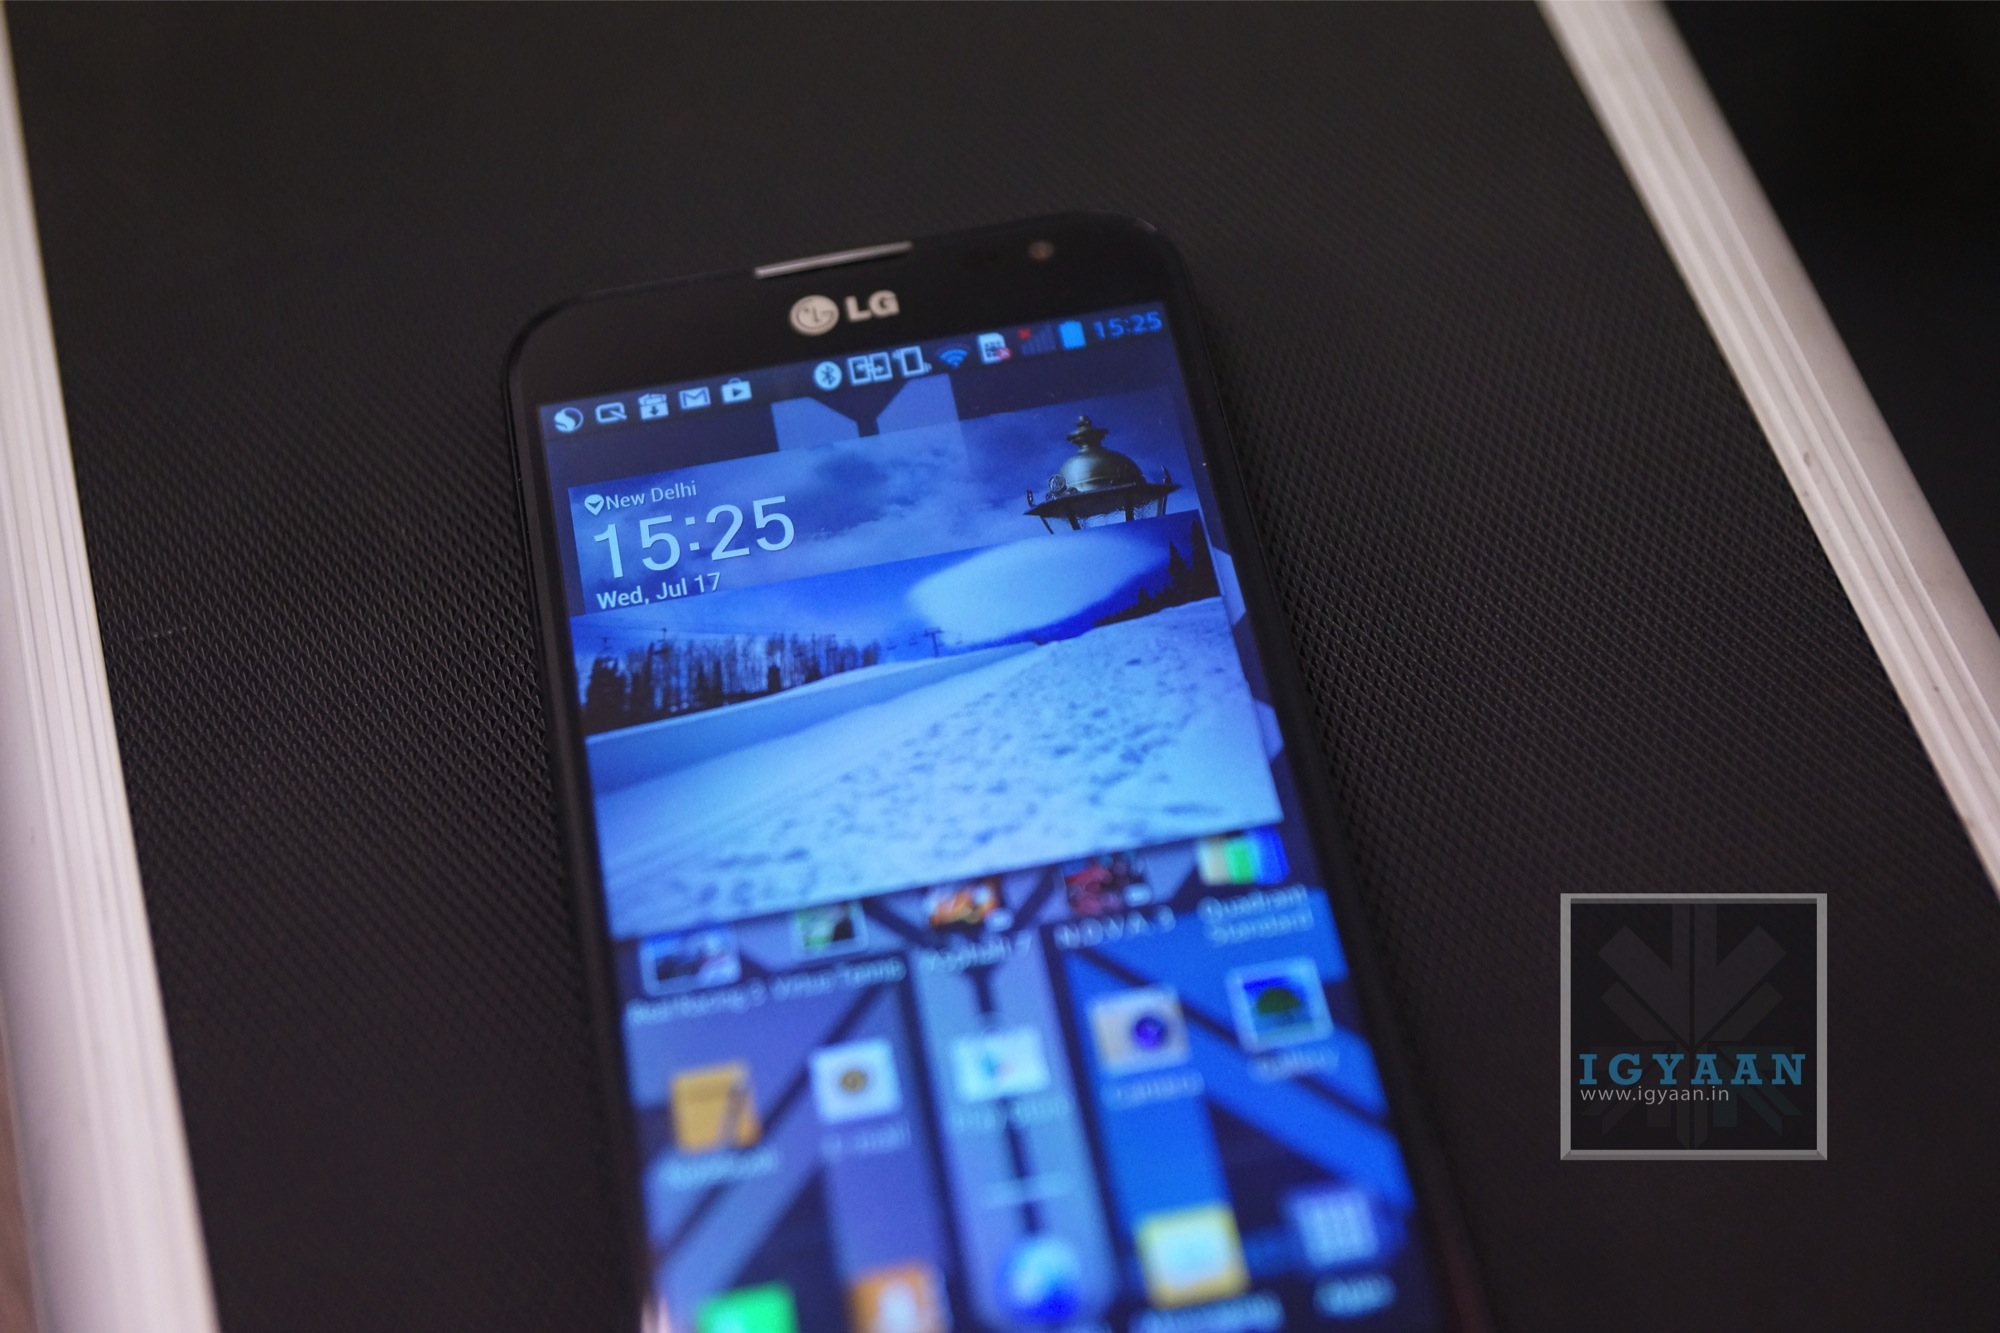 LG Optimus G Pro E988 / E 985 Flash Review